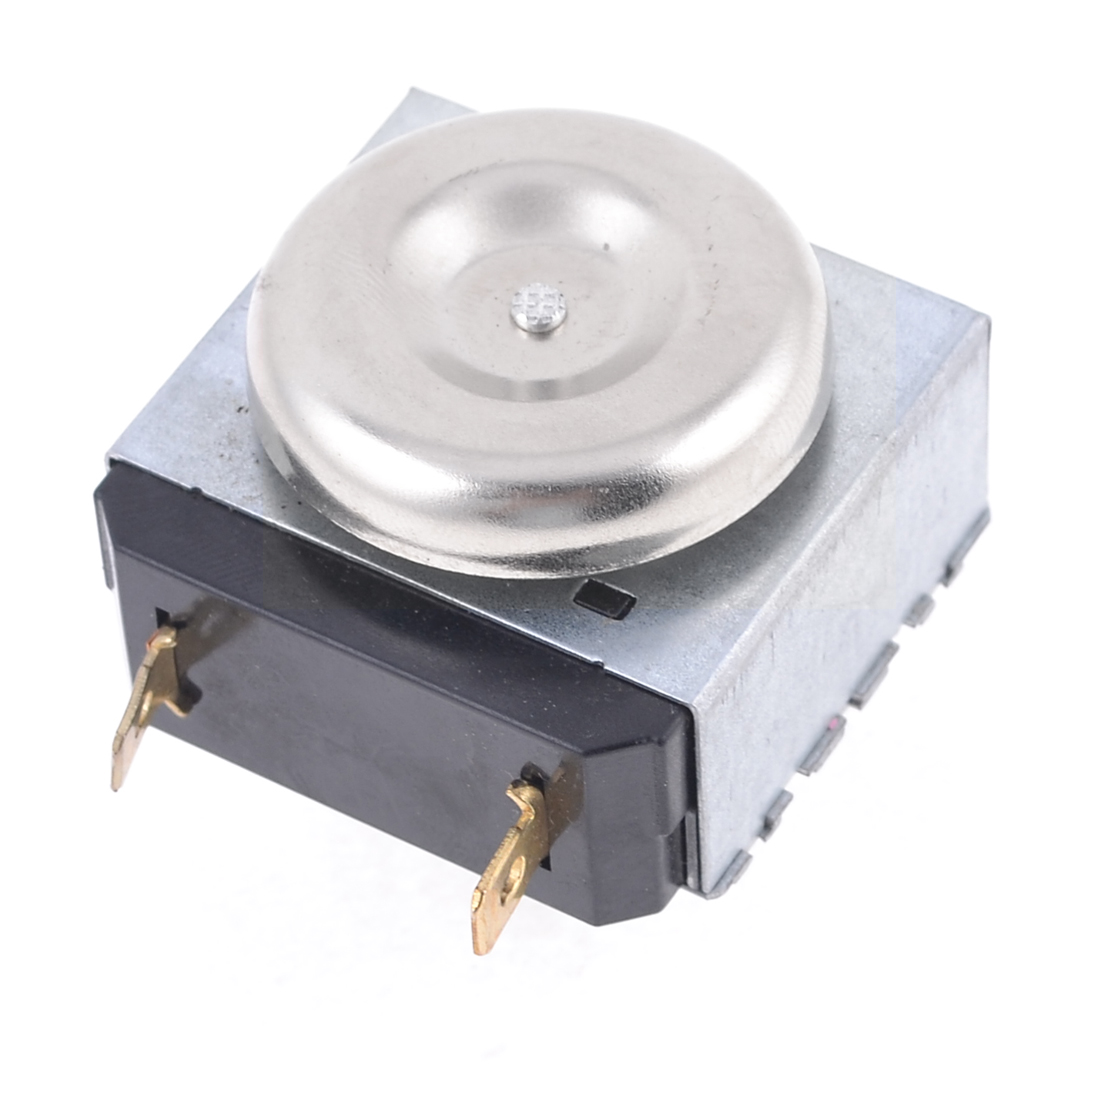 AC 250V 15A 79 Minutes Replacement Timer for Electronic Rice Cooker